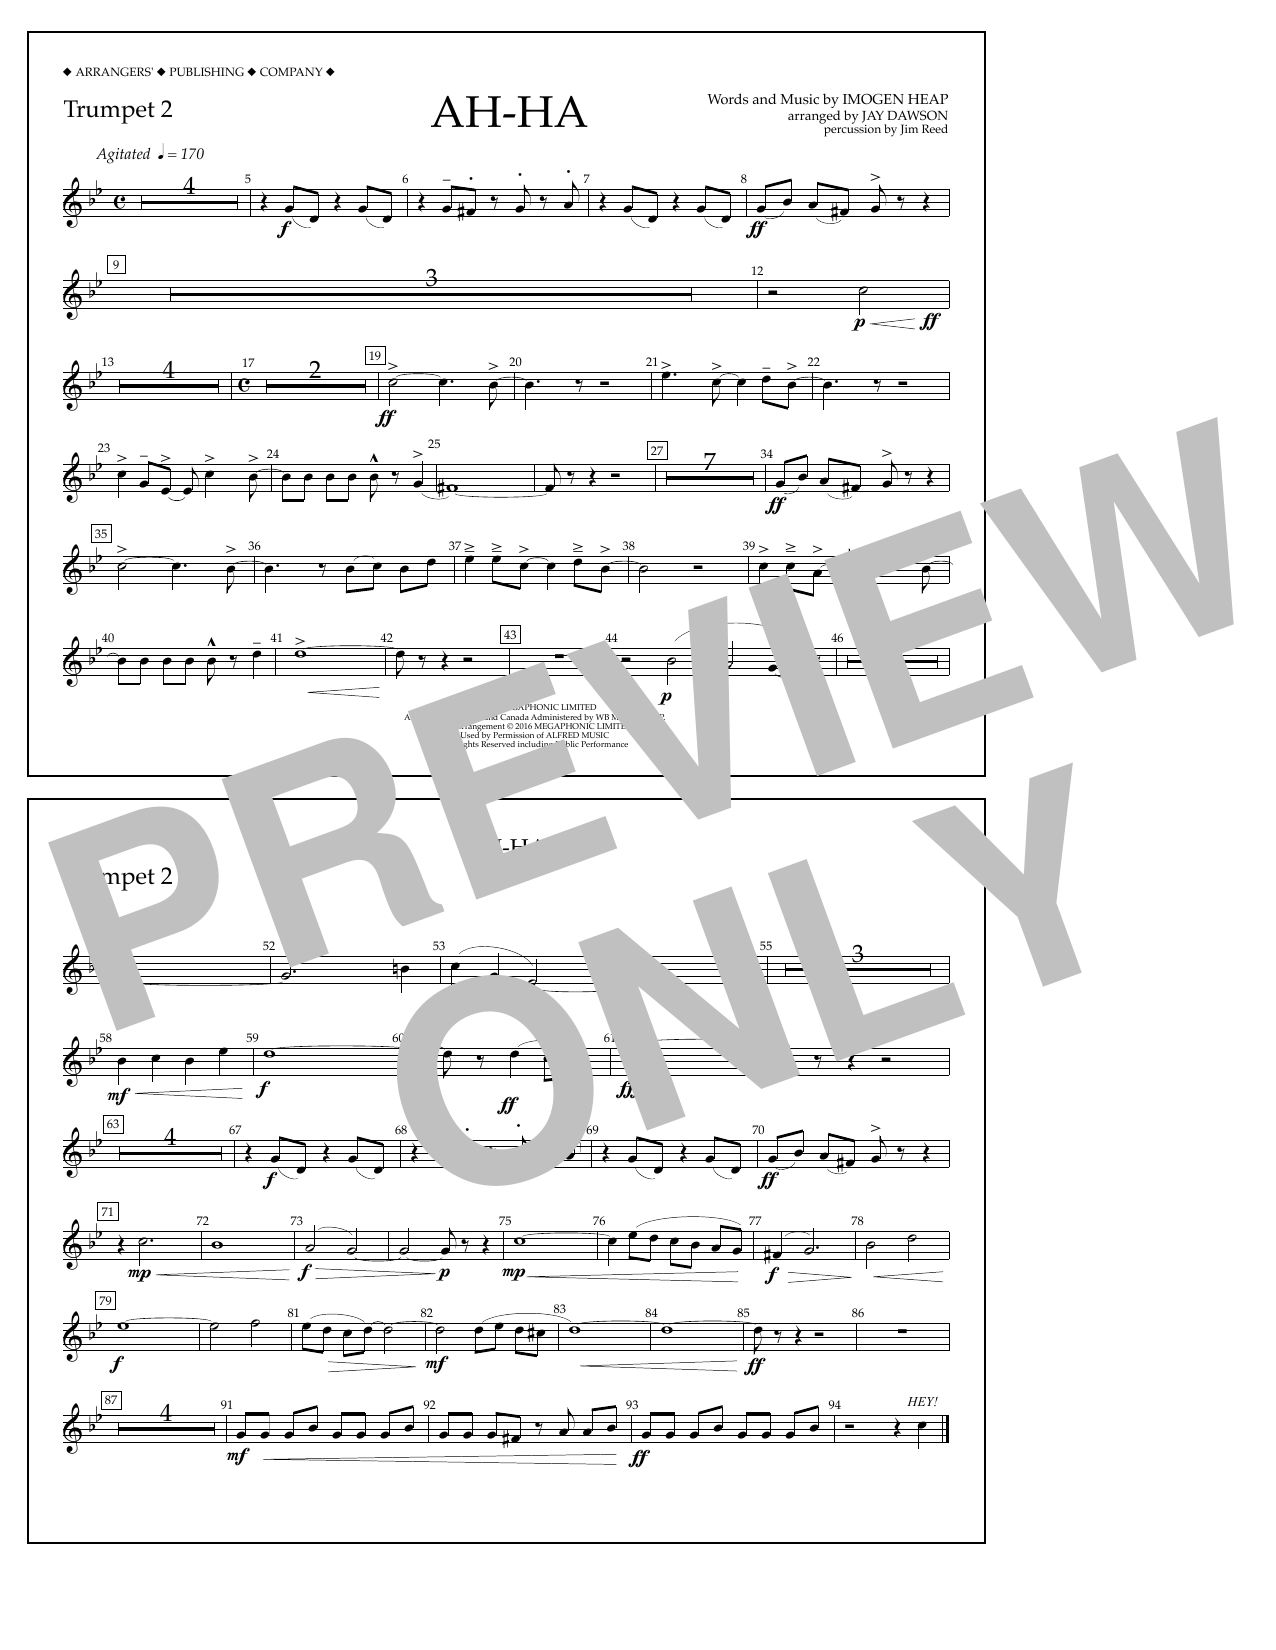 Jay Dawson Ah-ha - Trumpet 2 sheet music notes and chords. Download Printable PDF.